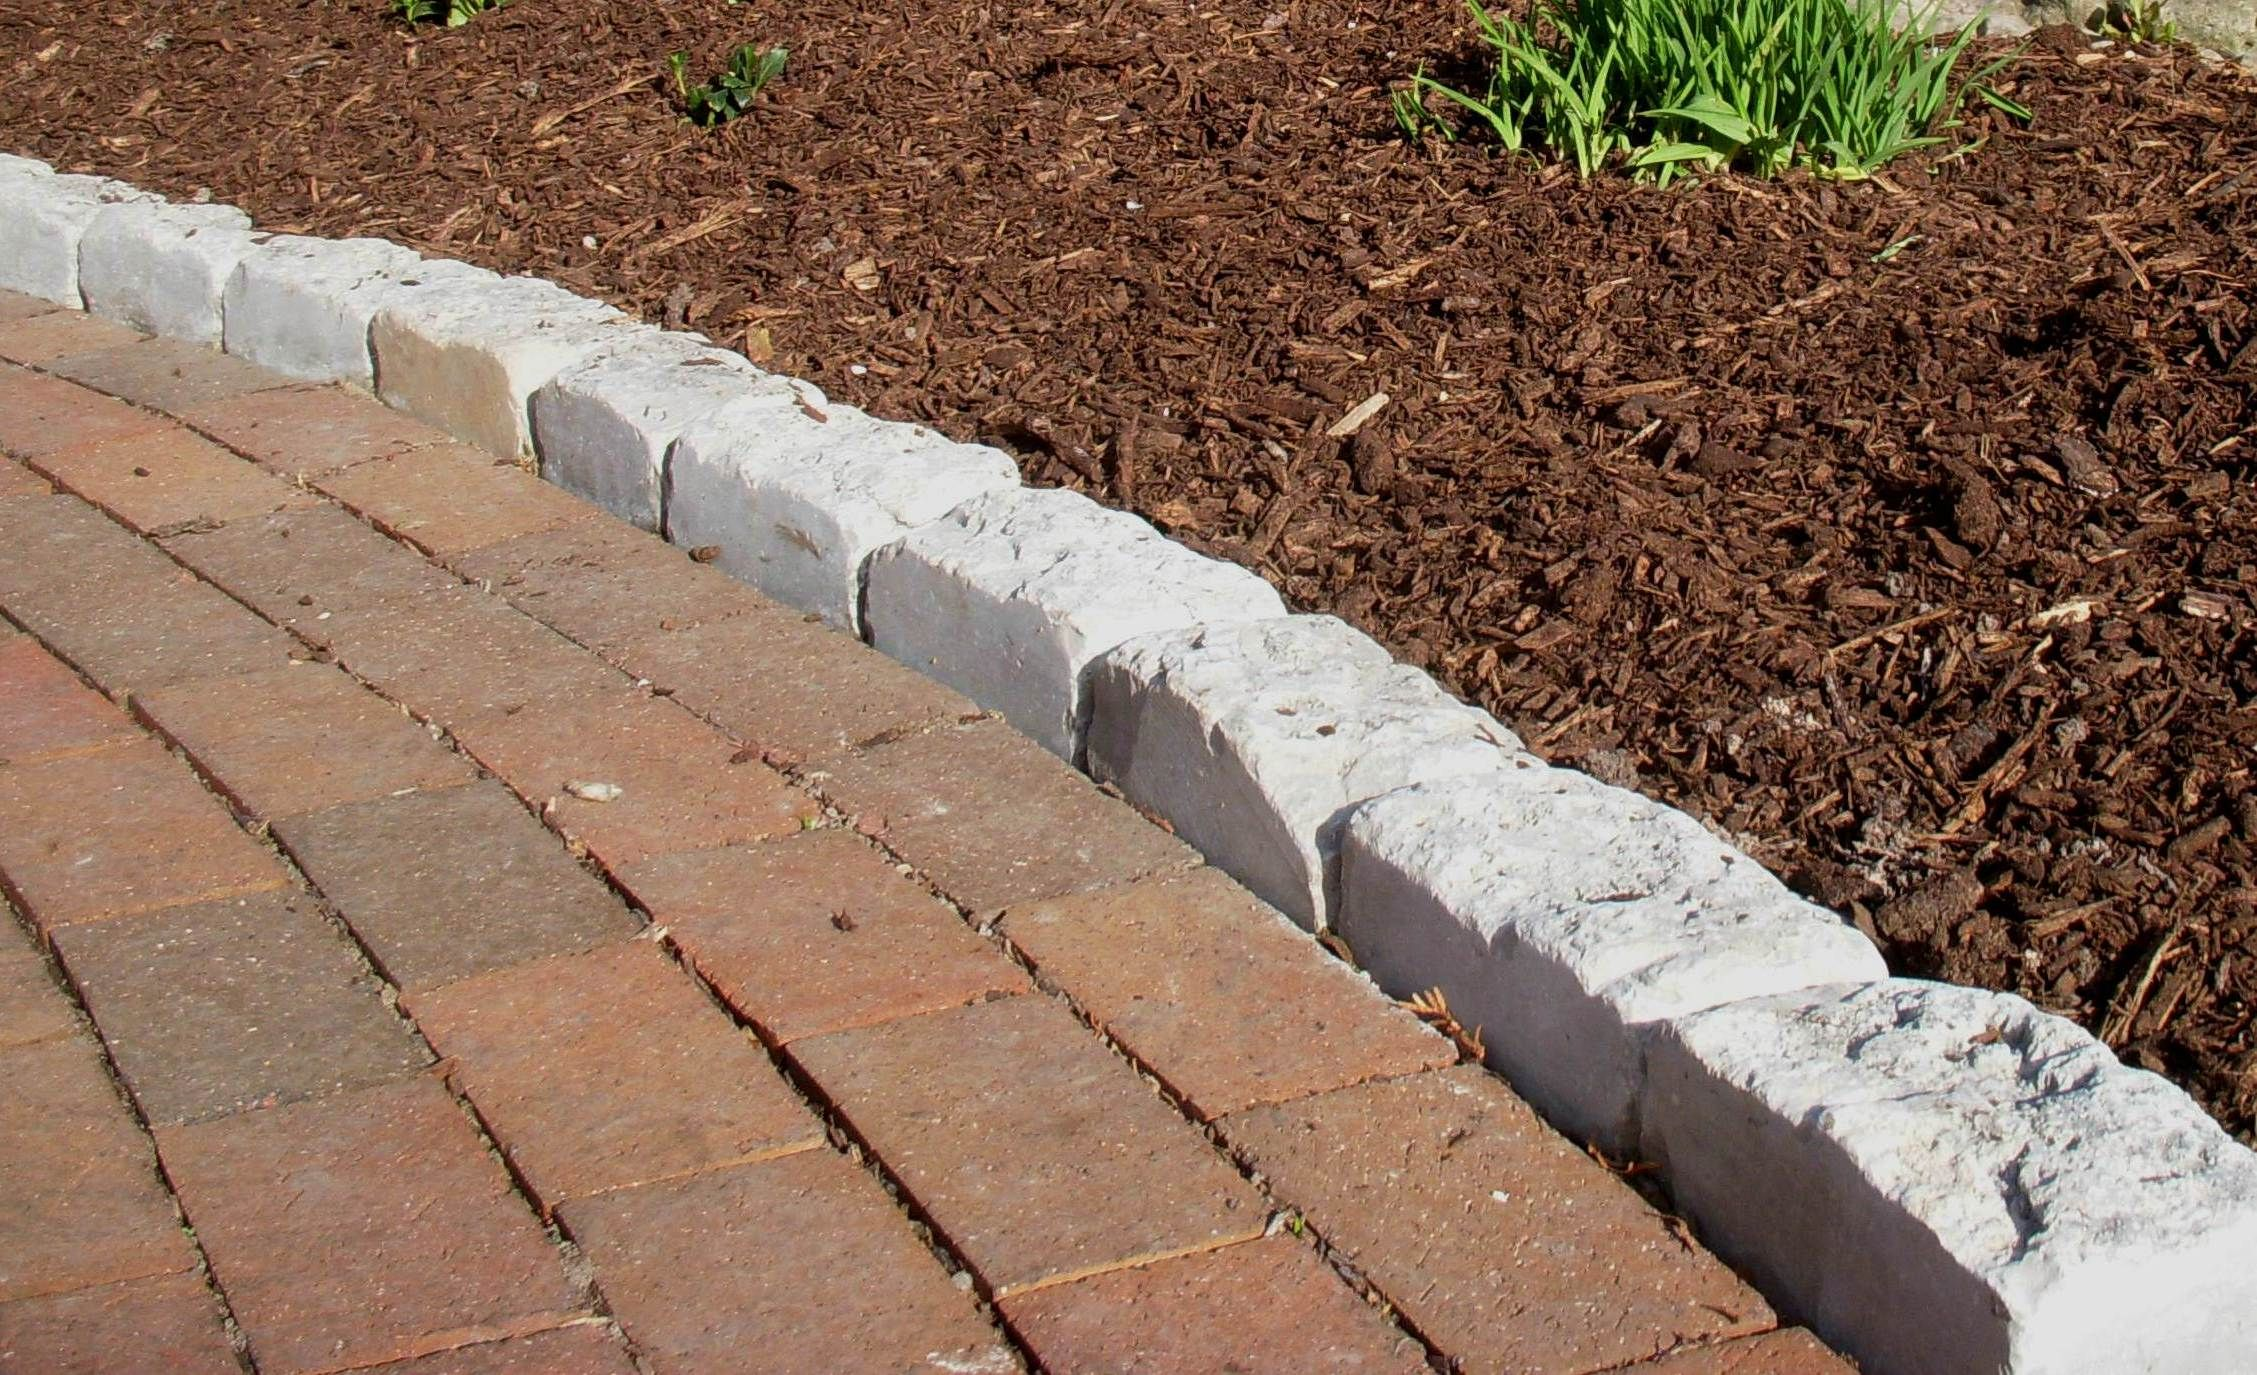 Lannon cobble edging along brick sidewalk decorative for Brick sidewalk edging